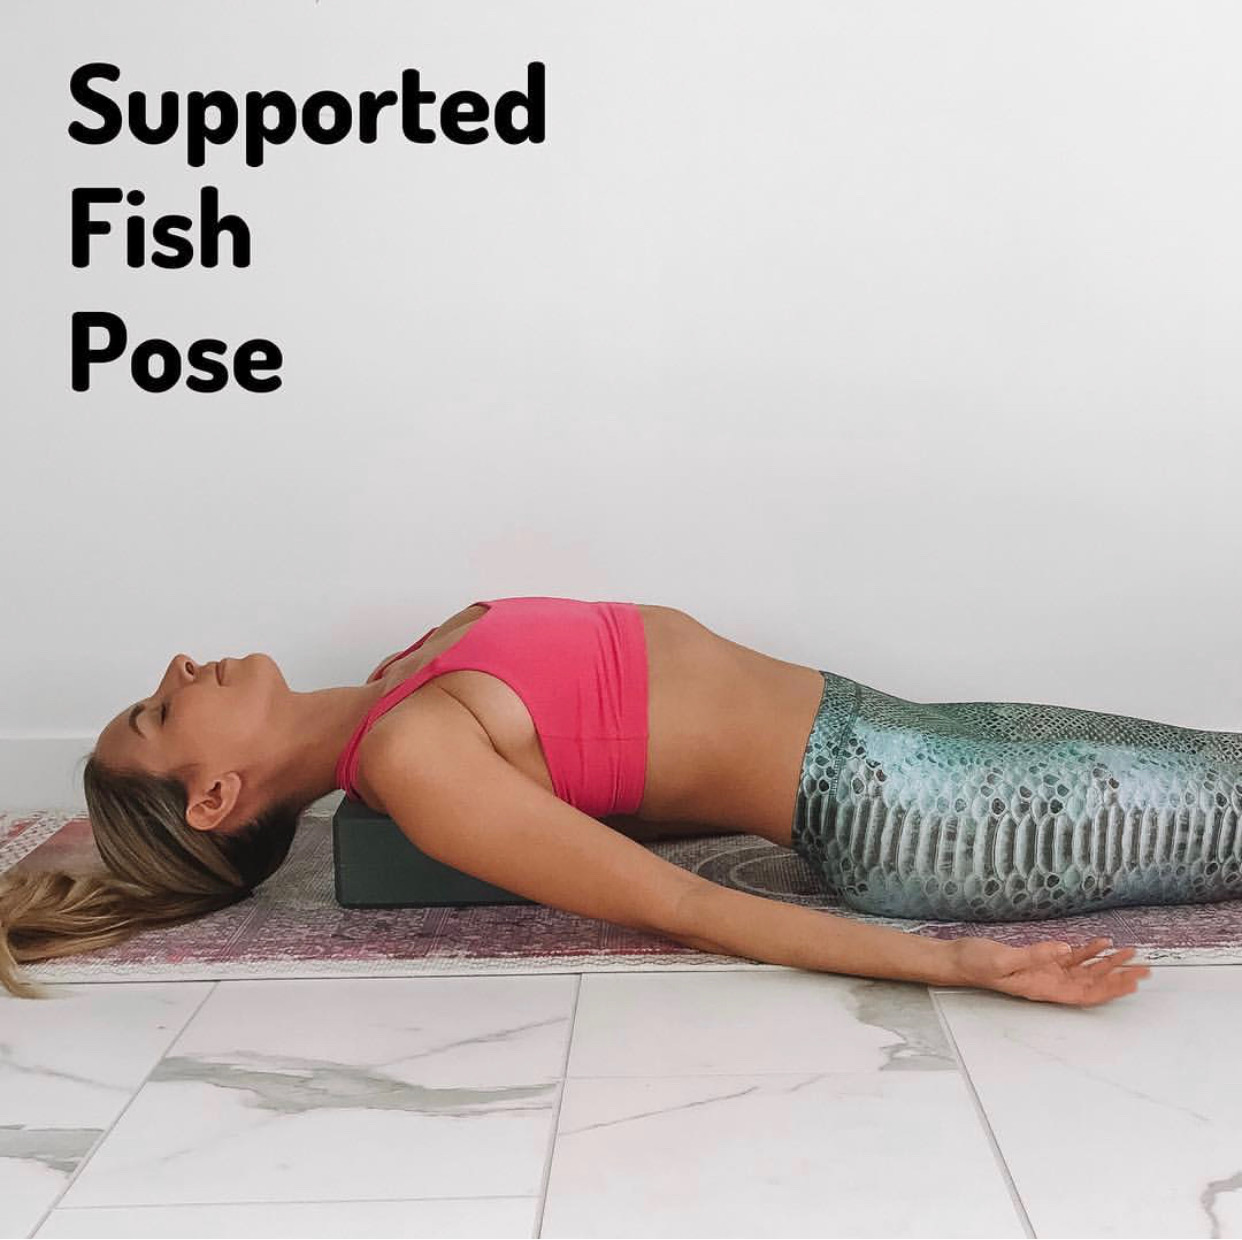 6. Supported Fish Pose x 2 minutes